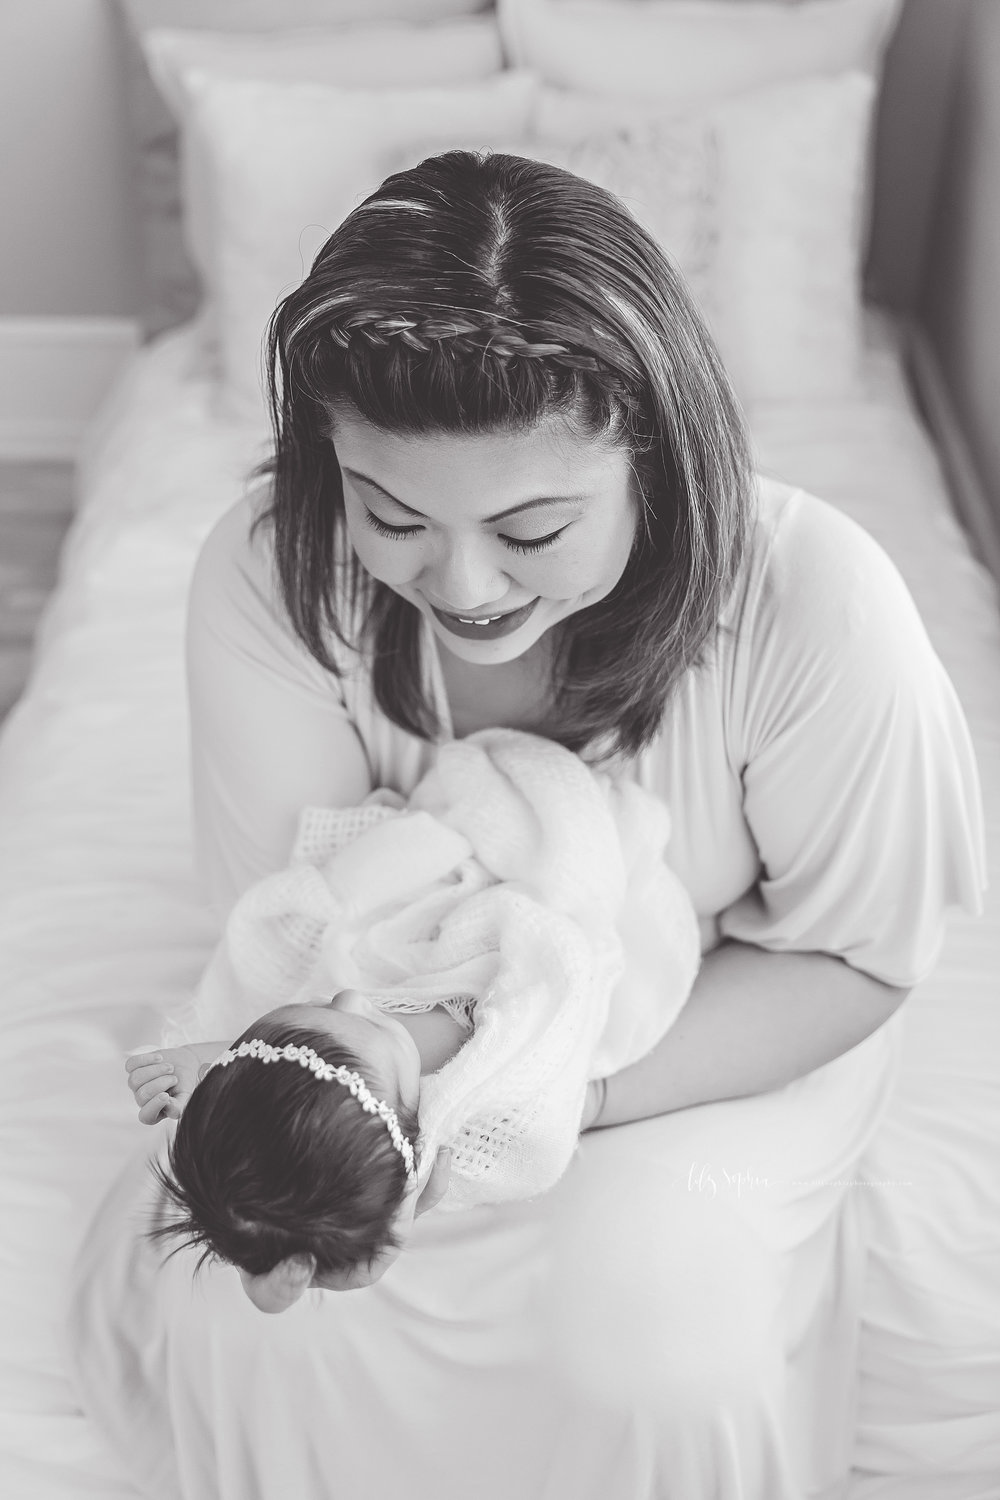 atlanta-buckhead-brookhaven-decatur-lily-sophia-photography-photographer-portraits-grant-park-intown-marietta-family-newborn-baby-girl-grandmother-black-and-white-photos-14.jpg